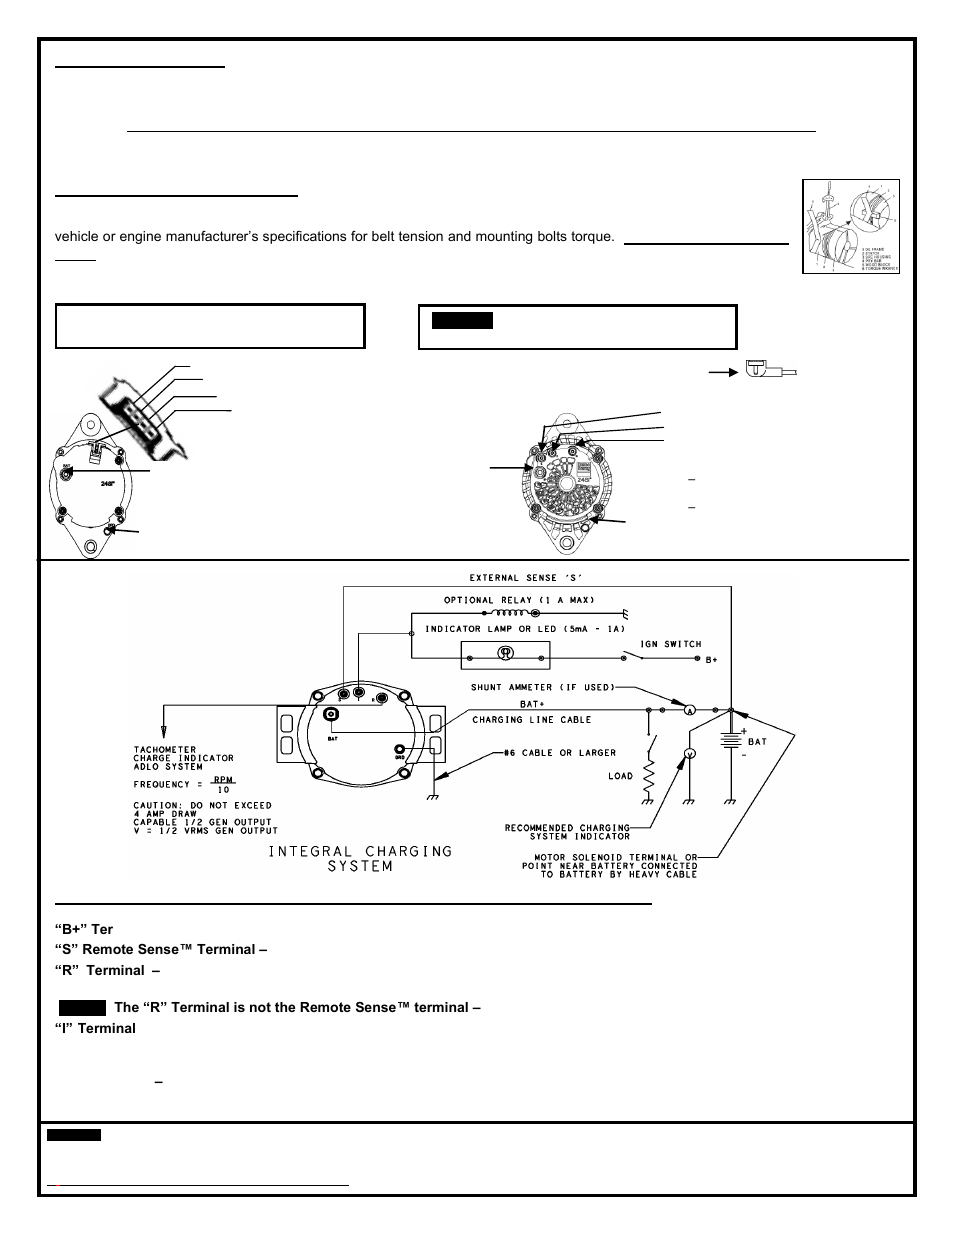 24si Alternator Wiring Diagram Library. Remy 28si Alternator User Manual Page 2 6. Wiring. Delco 24si Alternator Wiring Diagram At Scoala.co